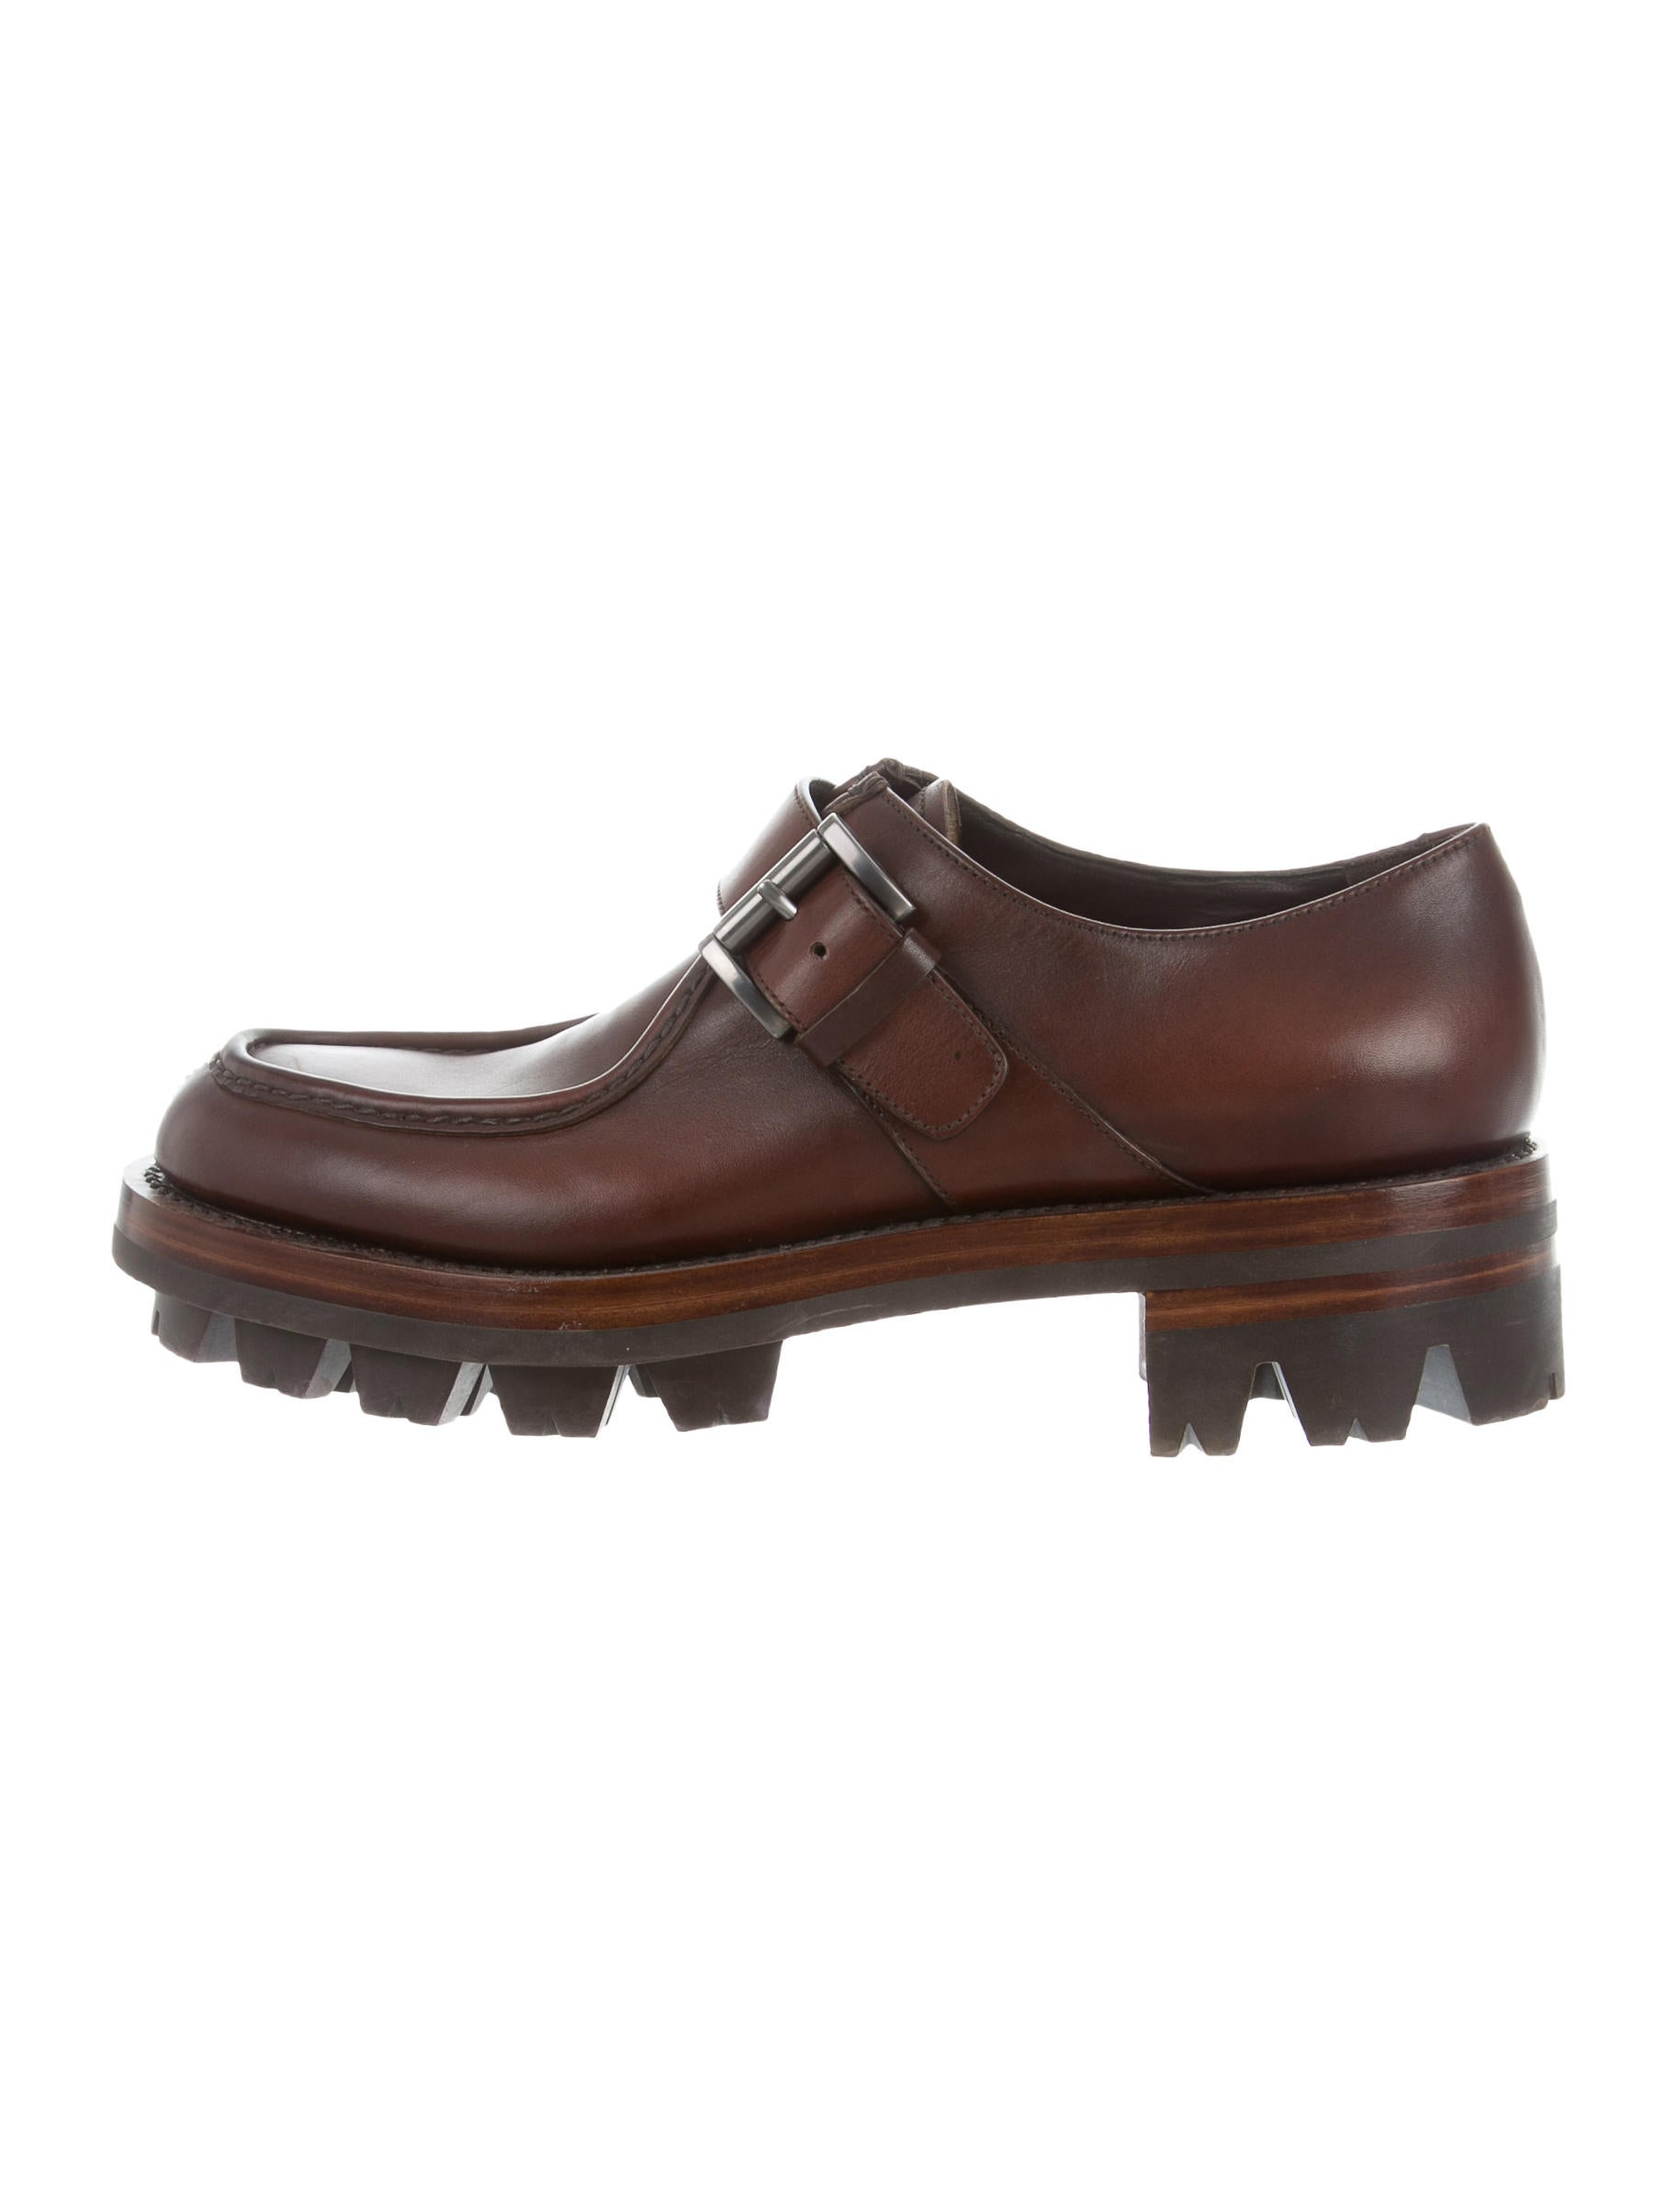 prada leather derby shoes shoes pra139048 the realreal